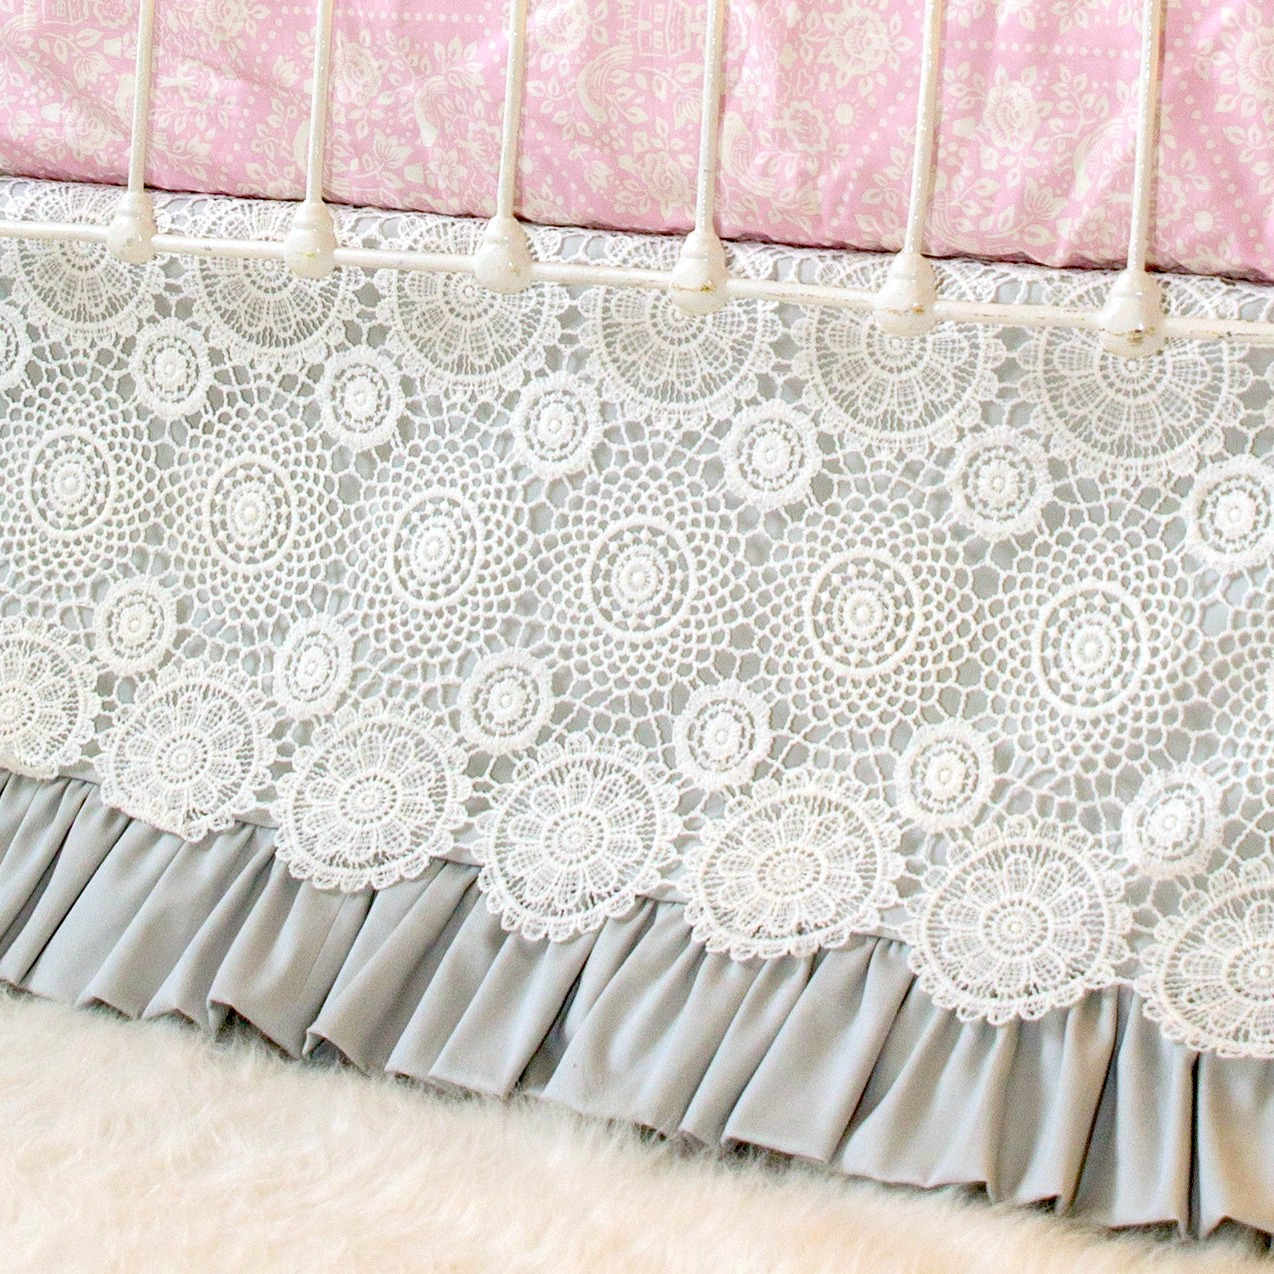 of skirt linensncurtains to fabric many make crib a yards com how blog